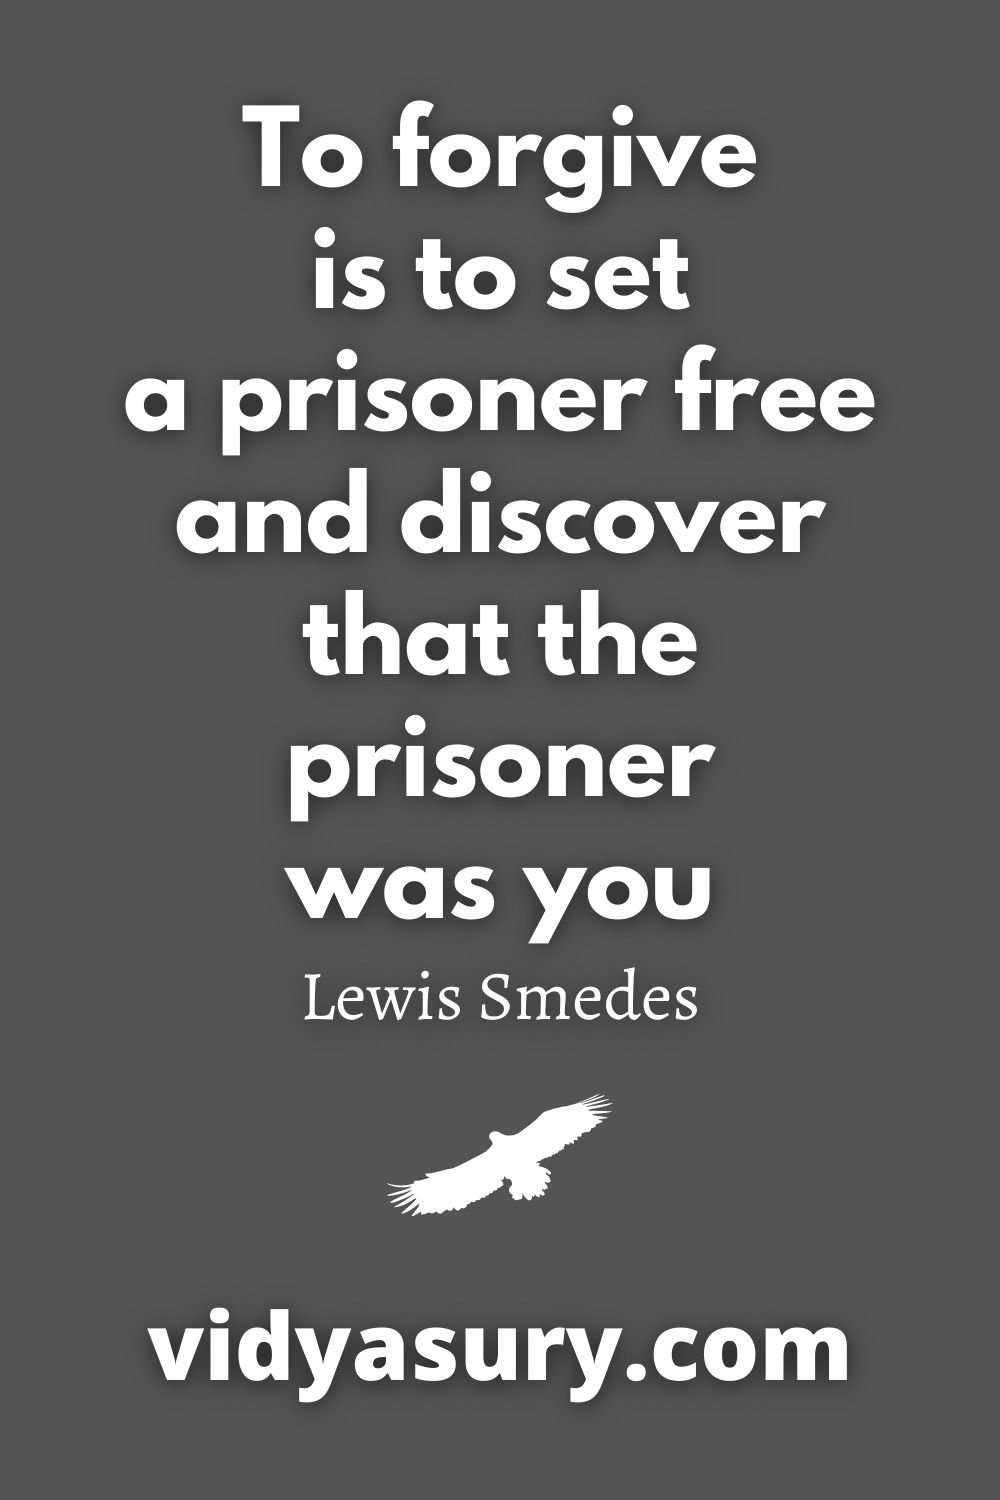 To forgive is to set a prisoner free and discover that the prisoner was you Lewis Smedes